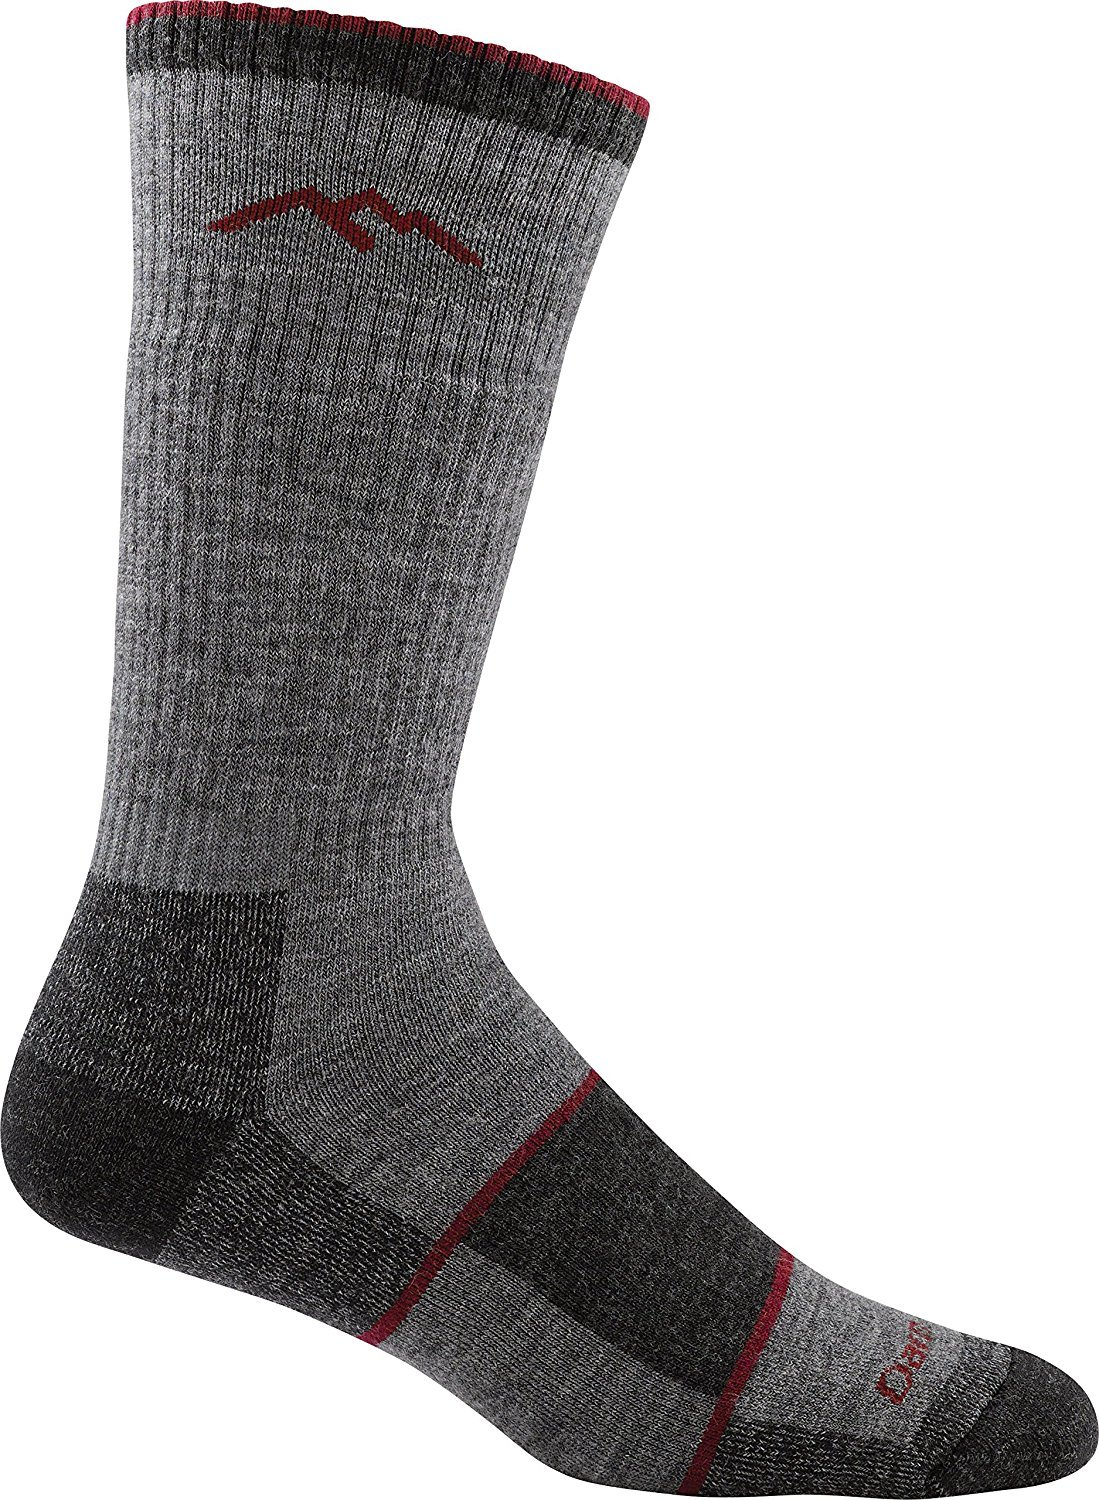 Darn Tough Vermont Men's Merino Wool Boot Sock Full Cushion ( Style 1405 ) - 6 Pack Charcoal, Large